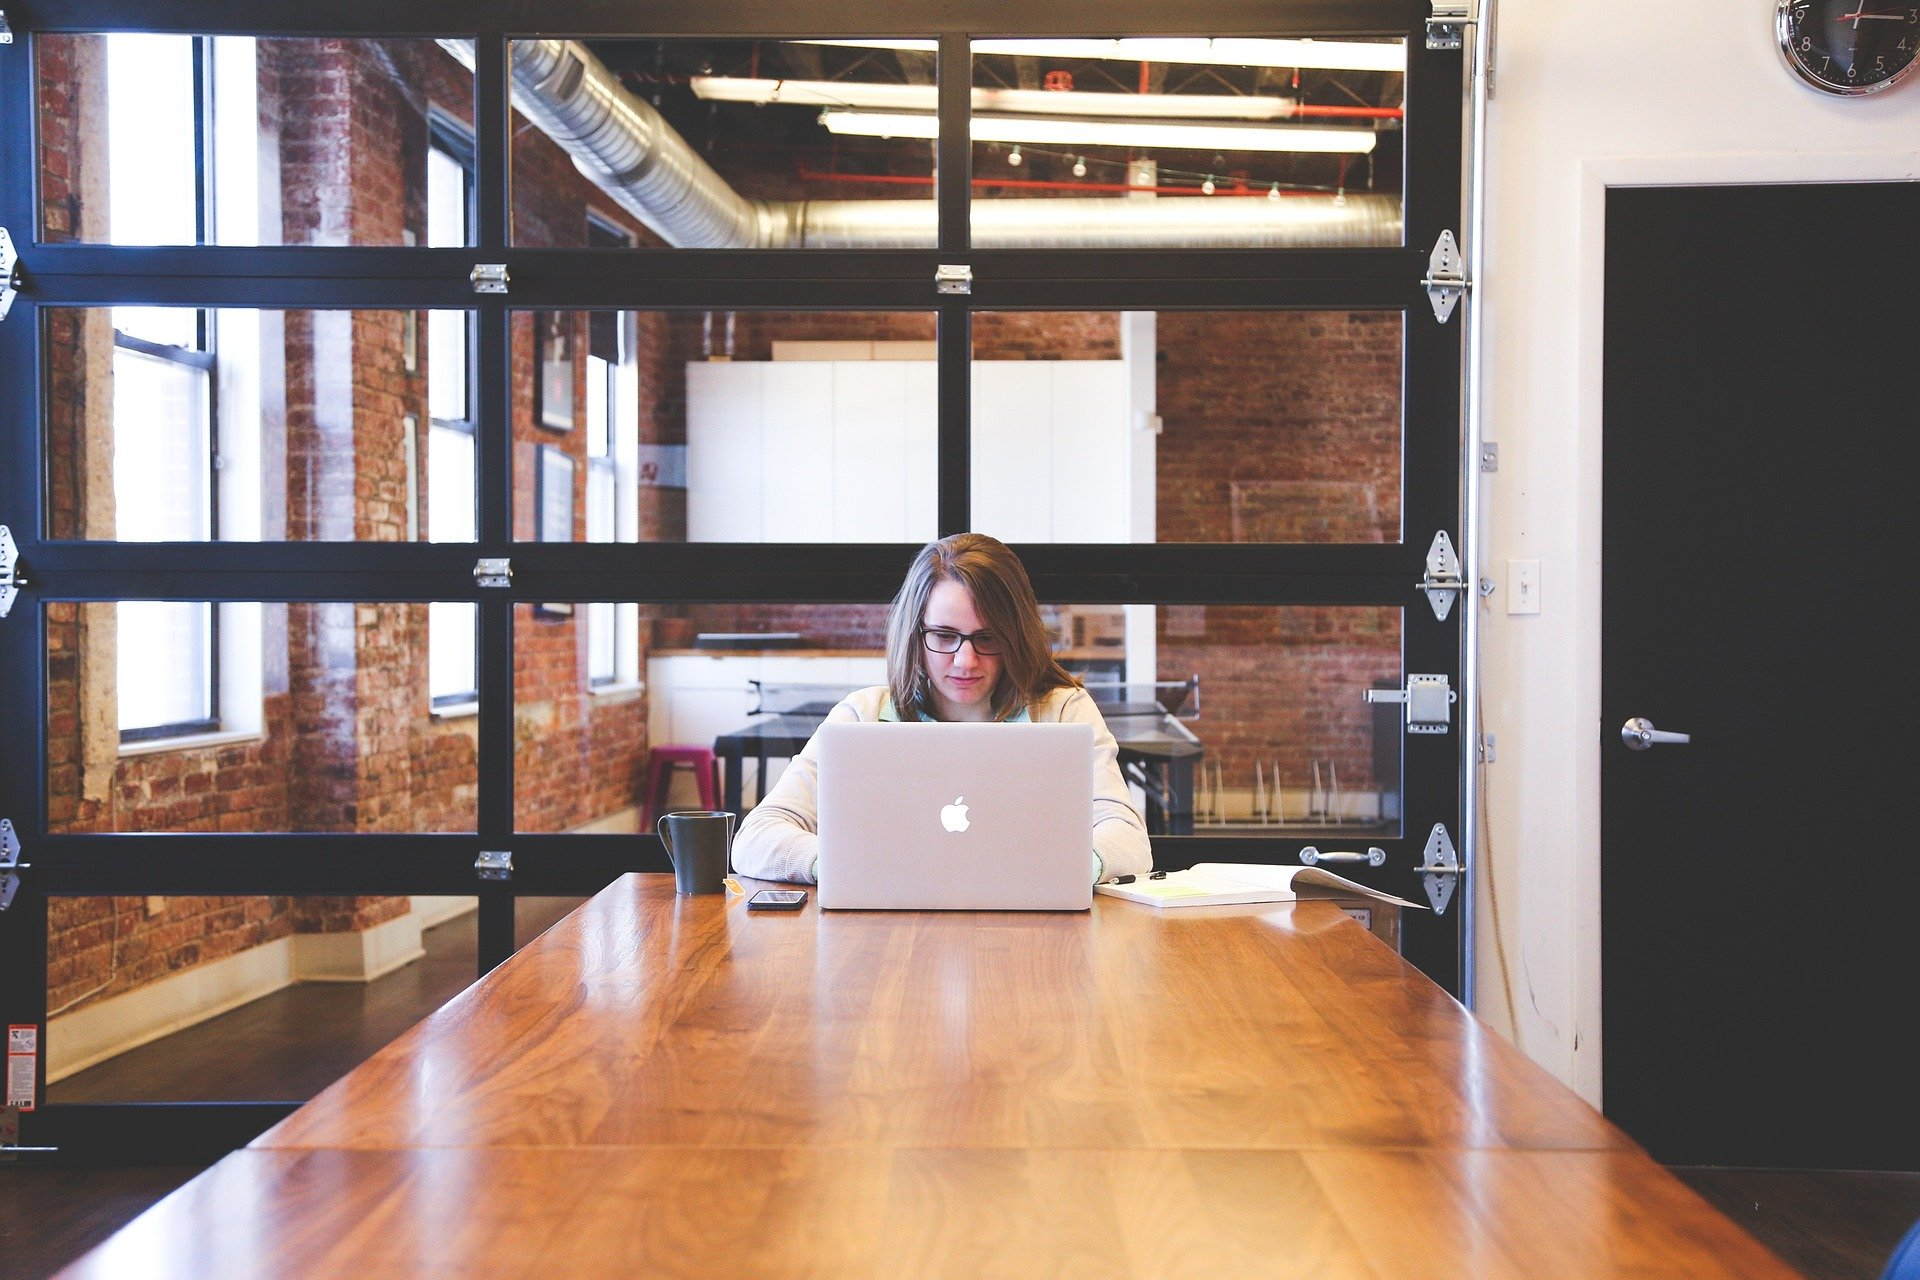 Top 4 Challenges When Hiring a Content Marketing Agency